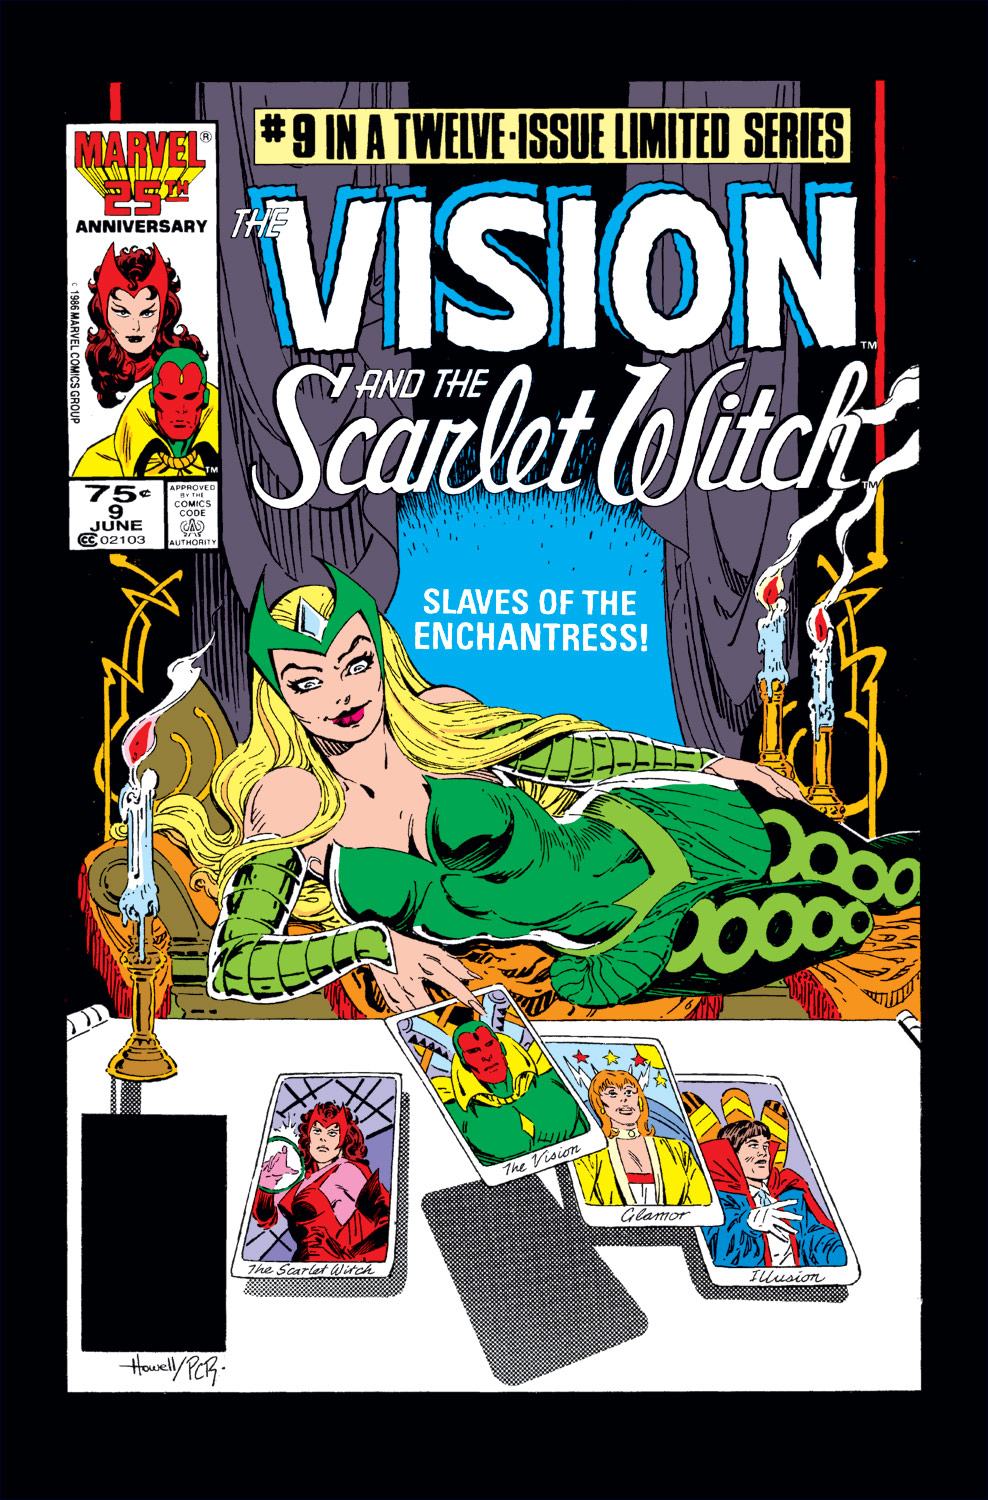 Vision and the Scarlet Witch (1985) #9